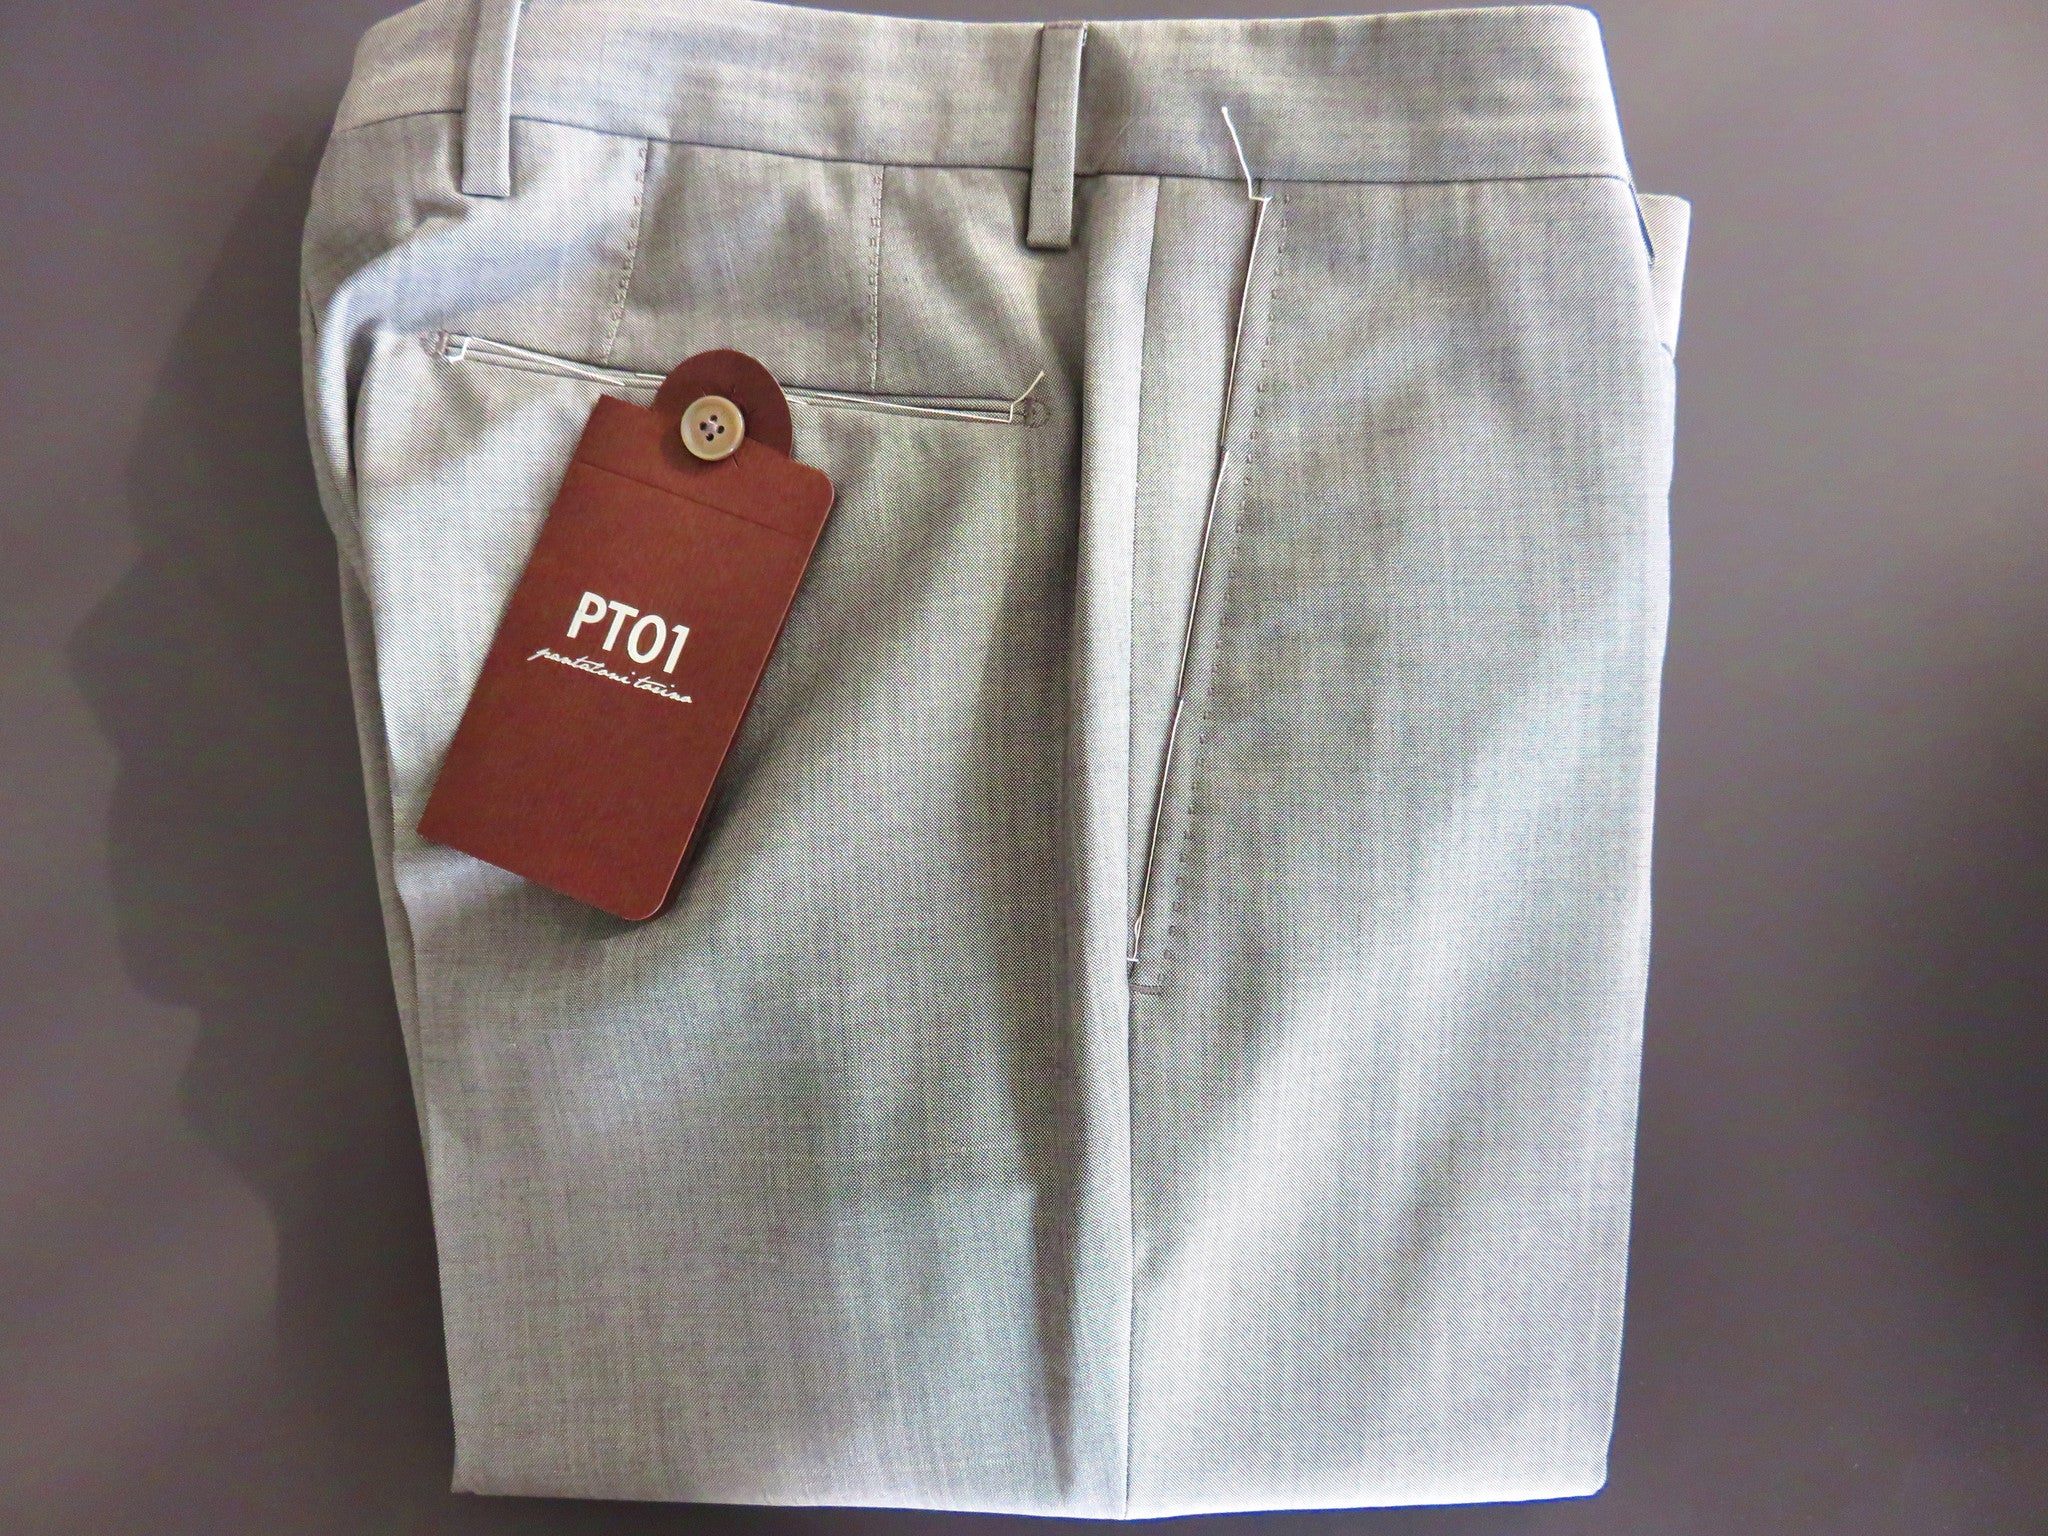 PT01 Pantaloni Torino - Luxury Mohair + Virgin Wool - Pearl Grey